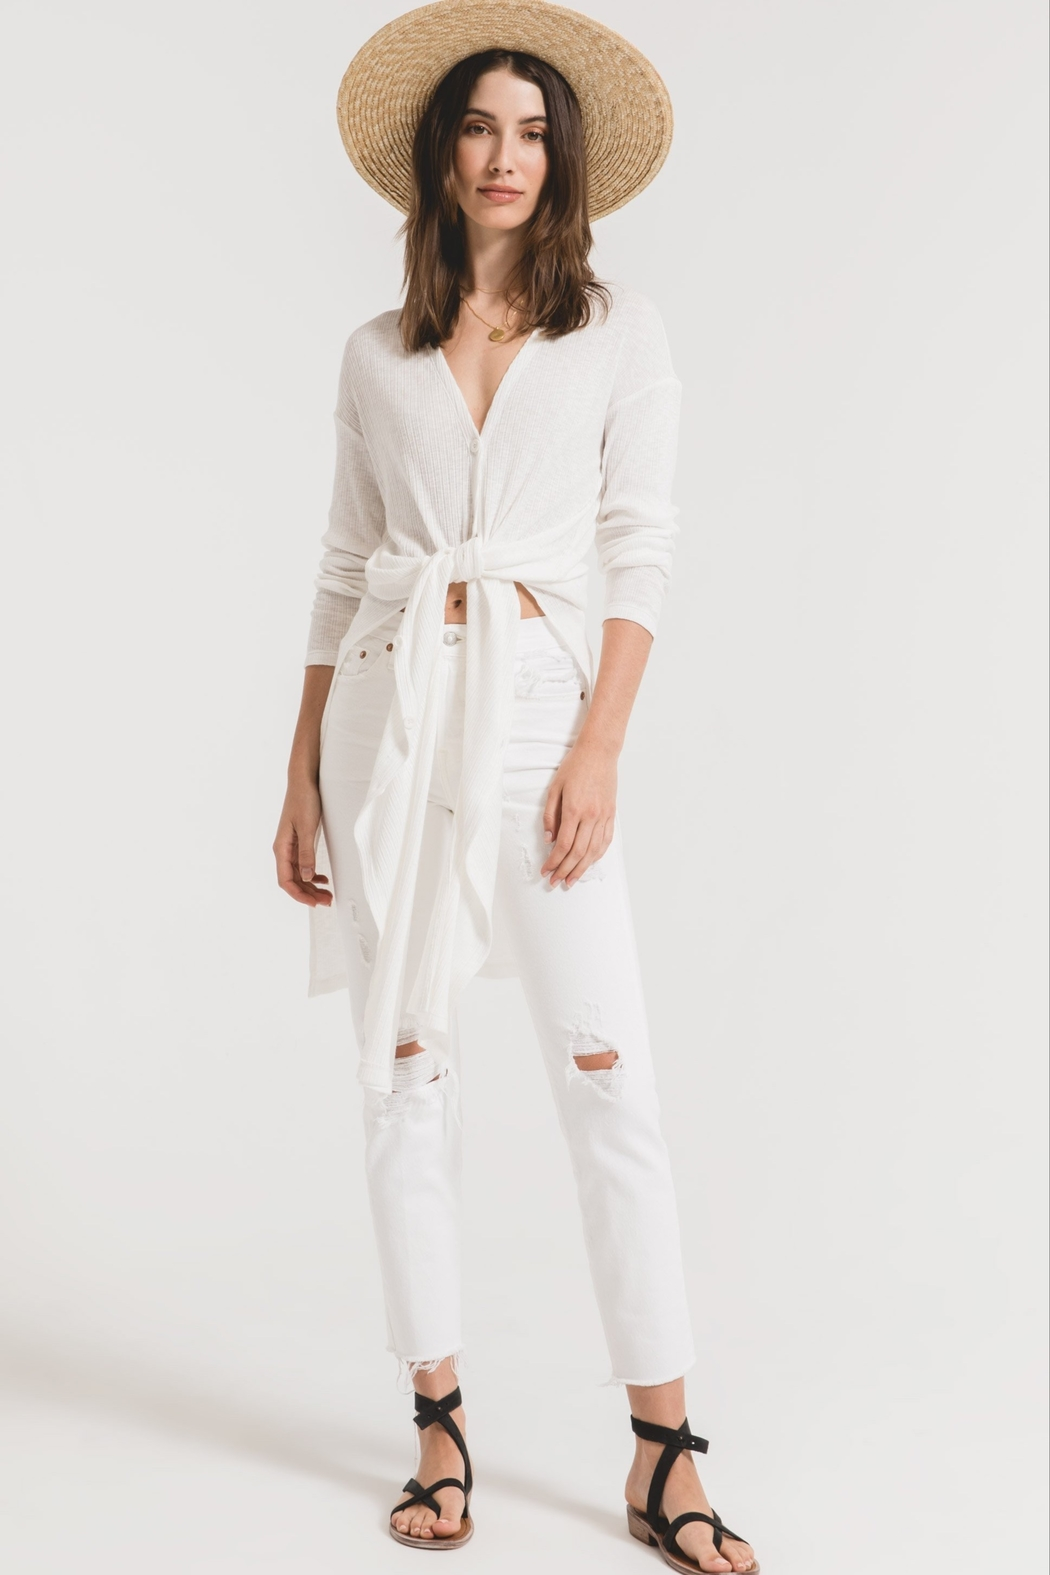 z supply Textured Rib Duster Cardigan - Side Cropped Image